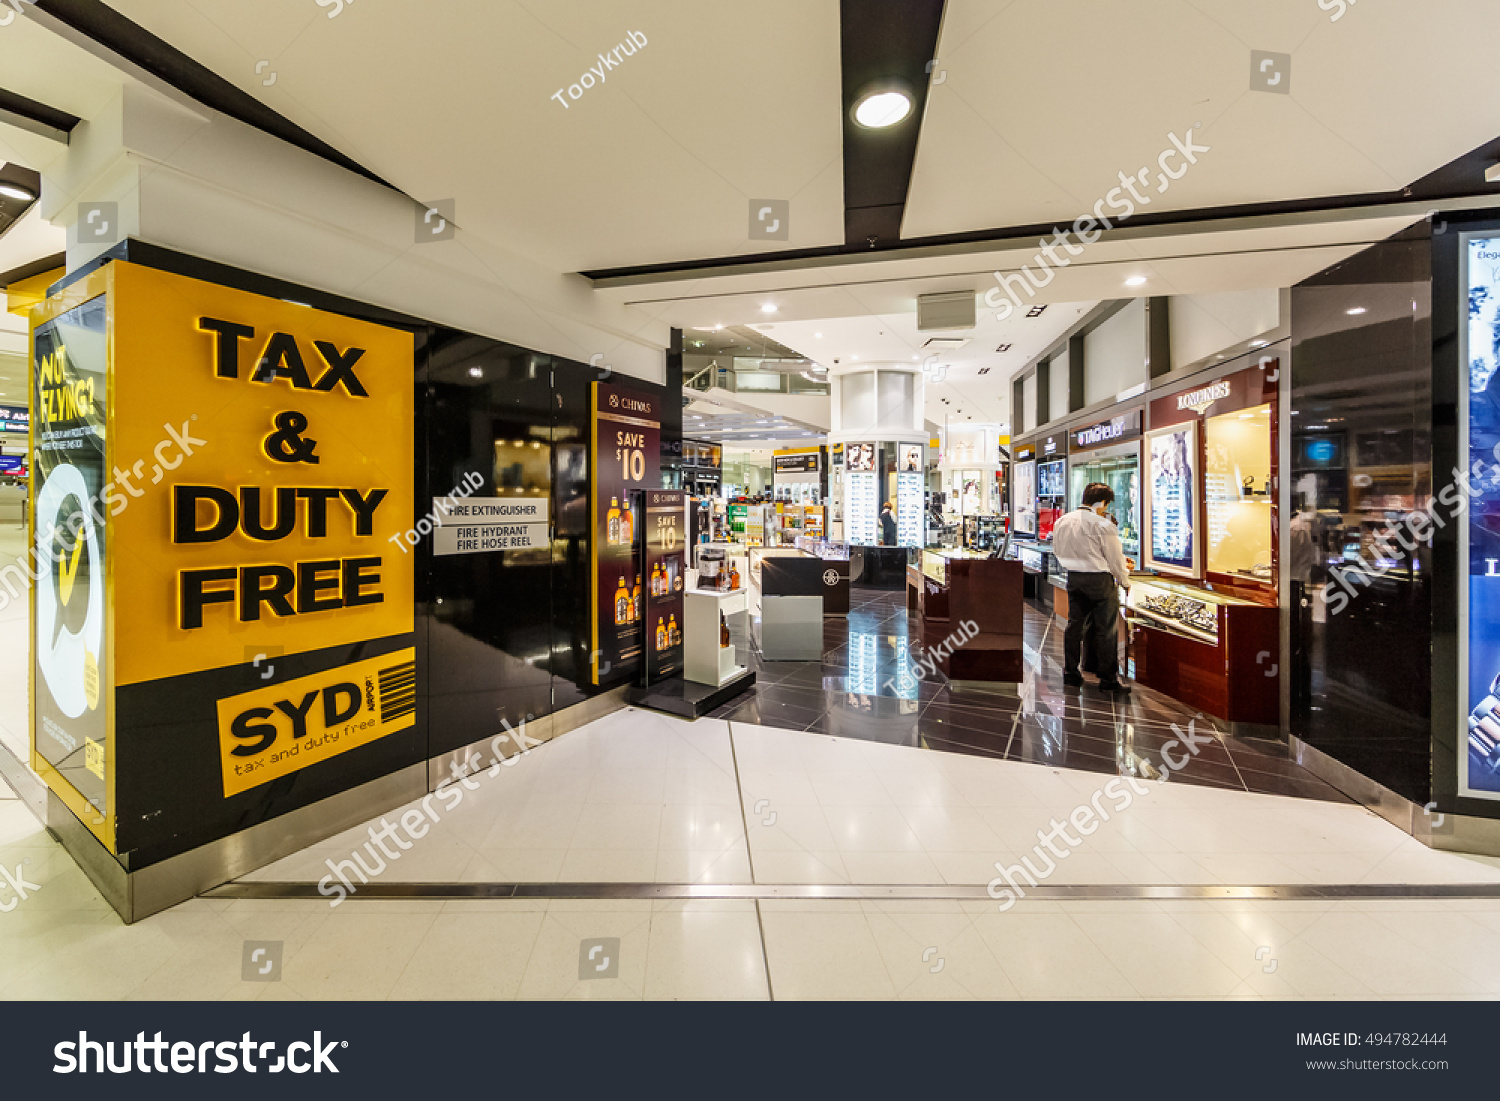 Sydney Airport Shops Sydney May 17 Duty Free Shops Stock Photo Edit Now 494782444